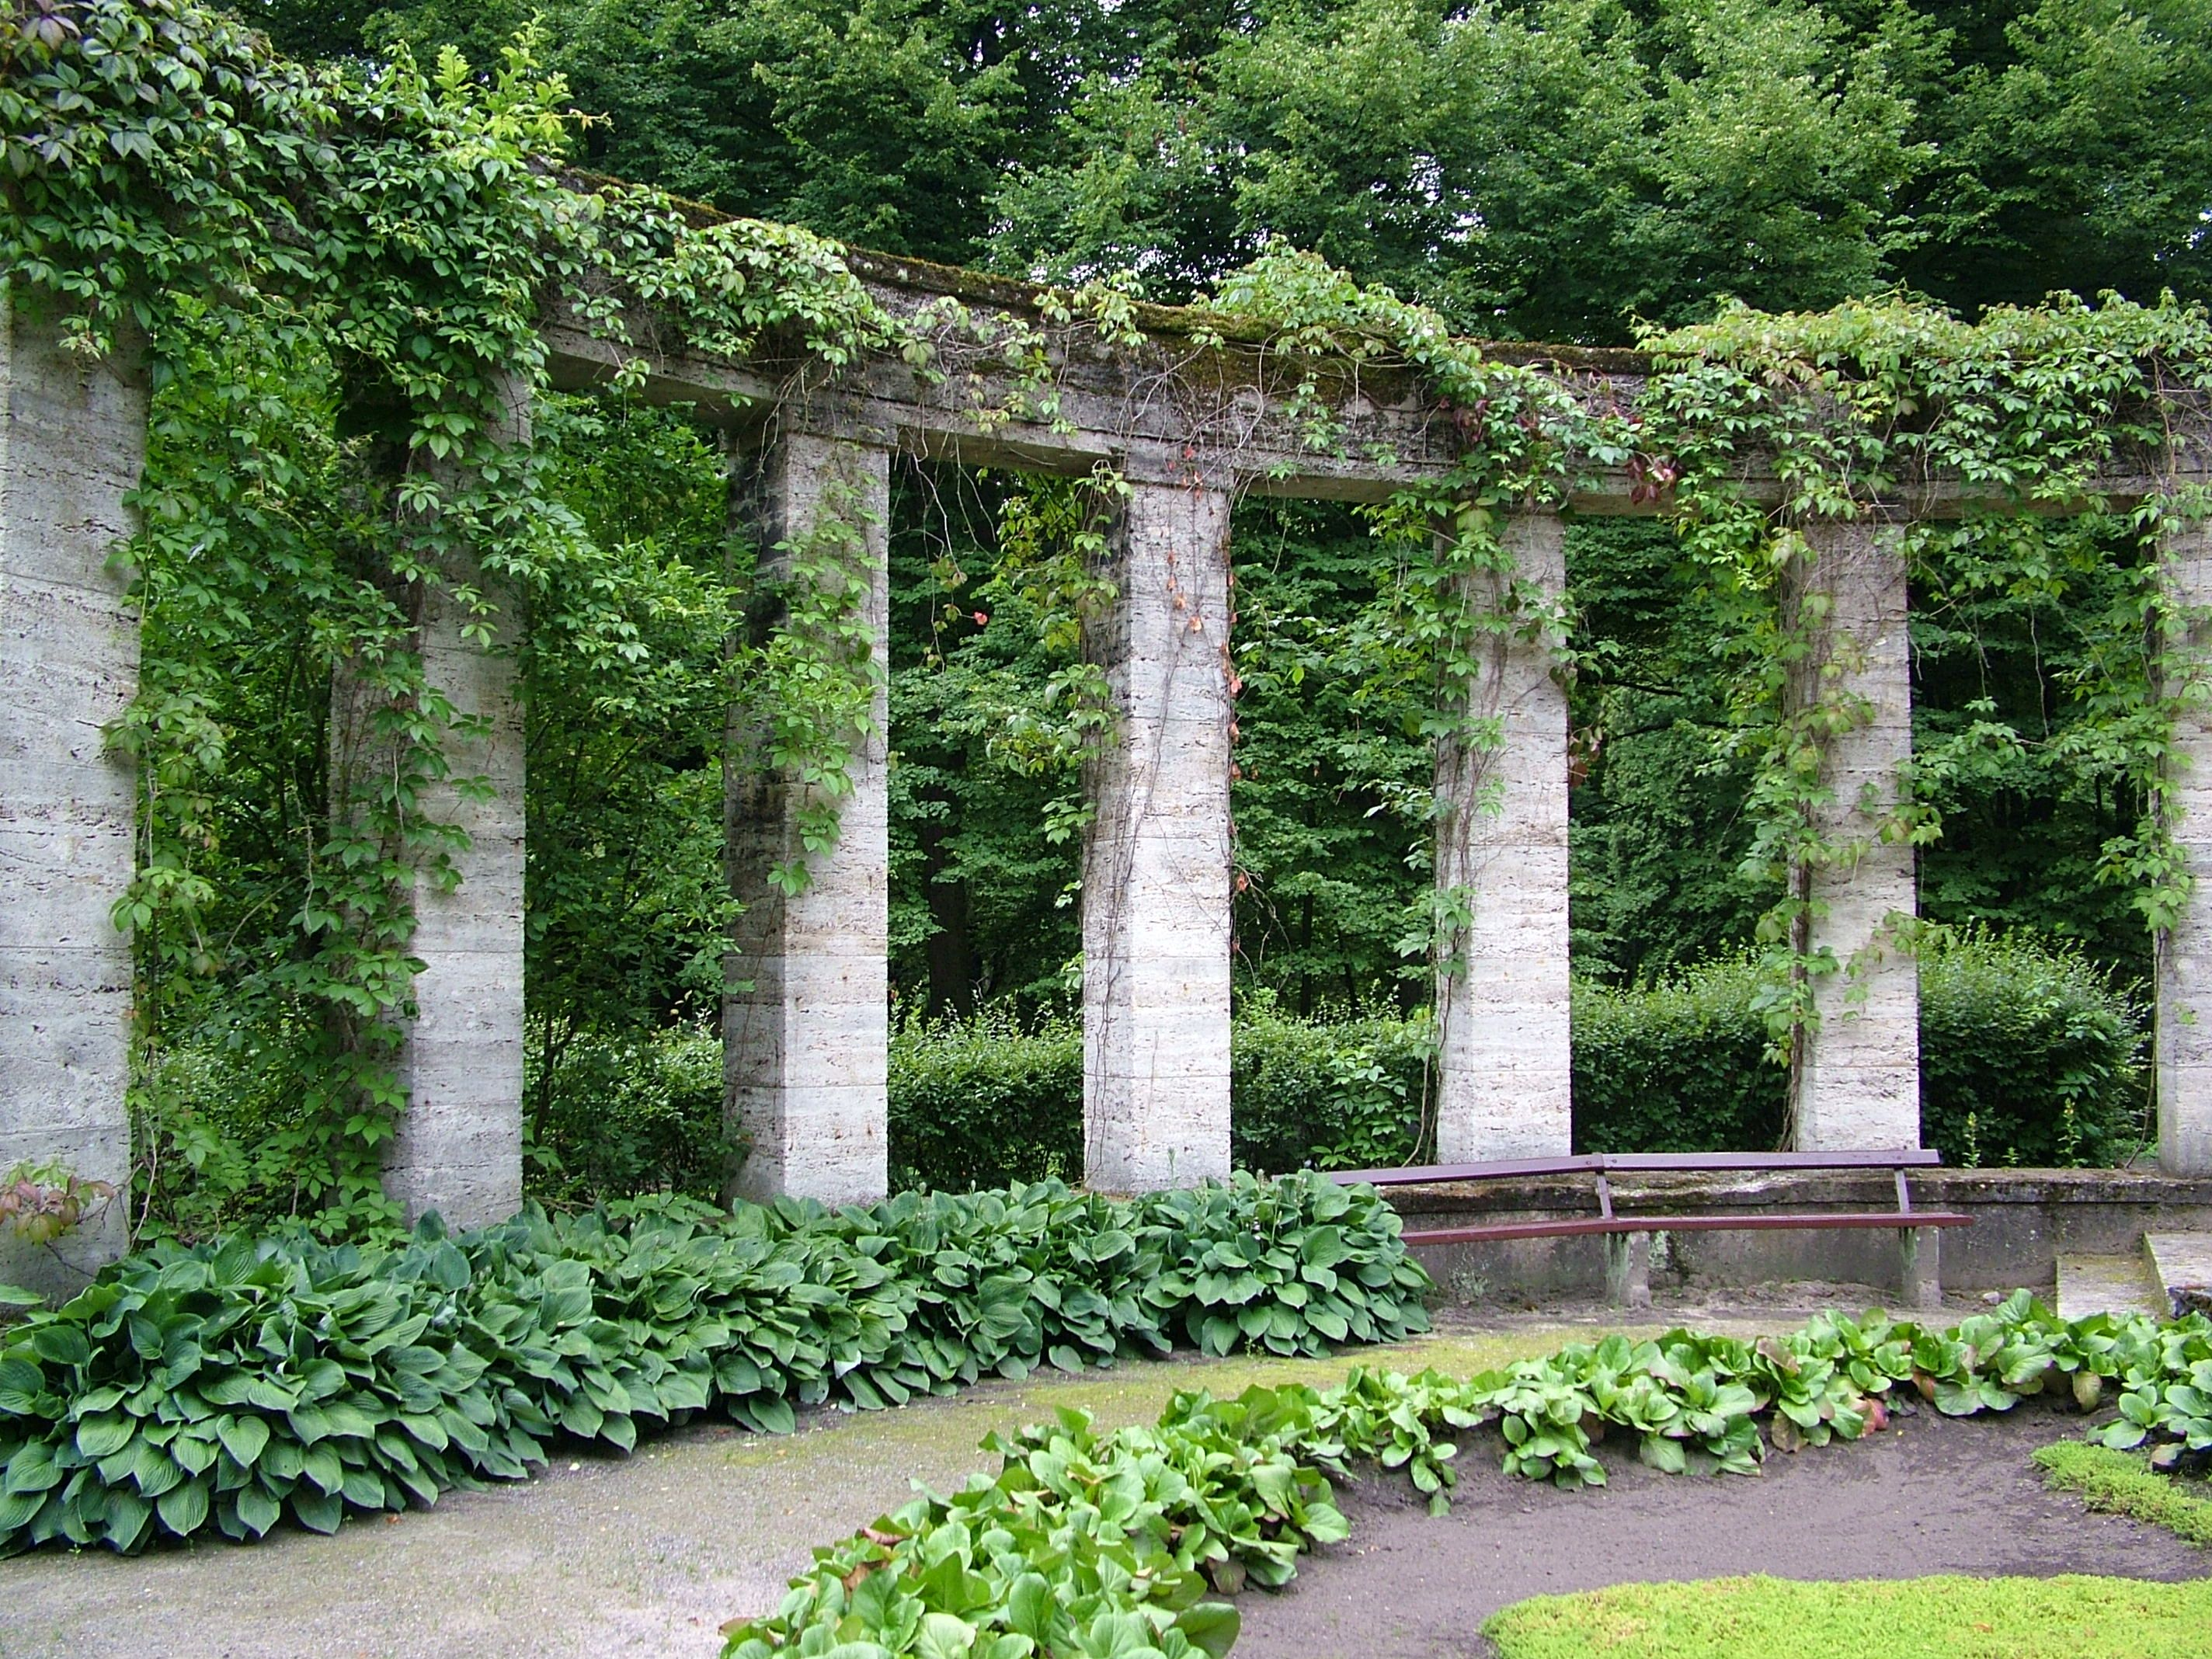 stupendous garden archway. arch arches overgrown garden bench column columns greek ancient